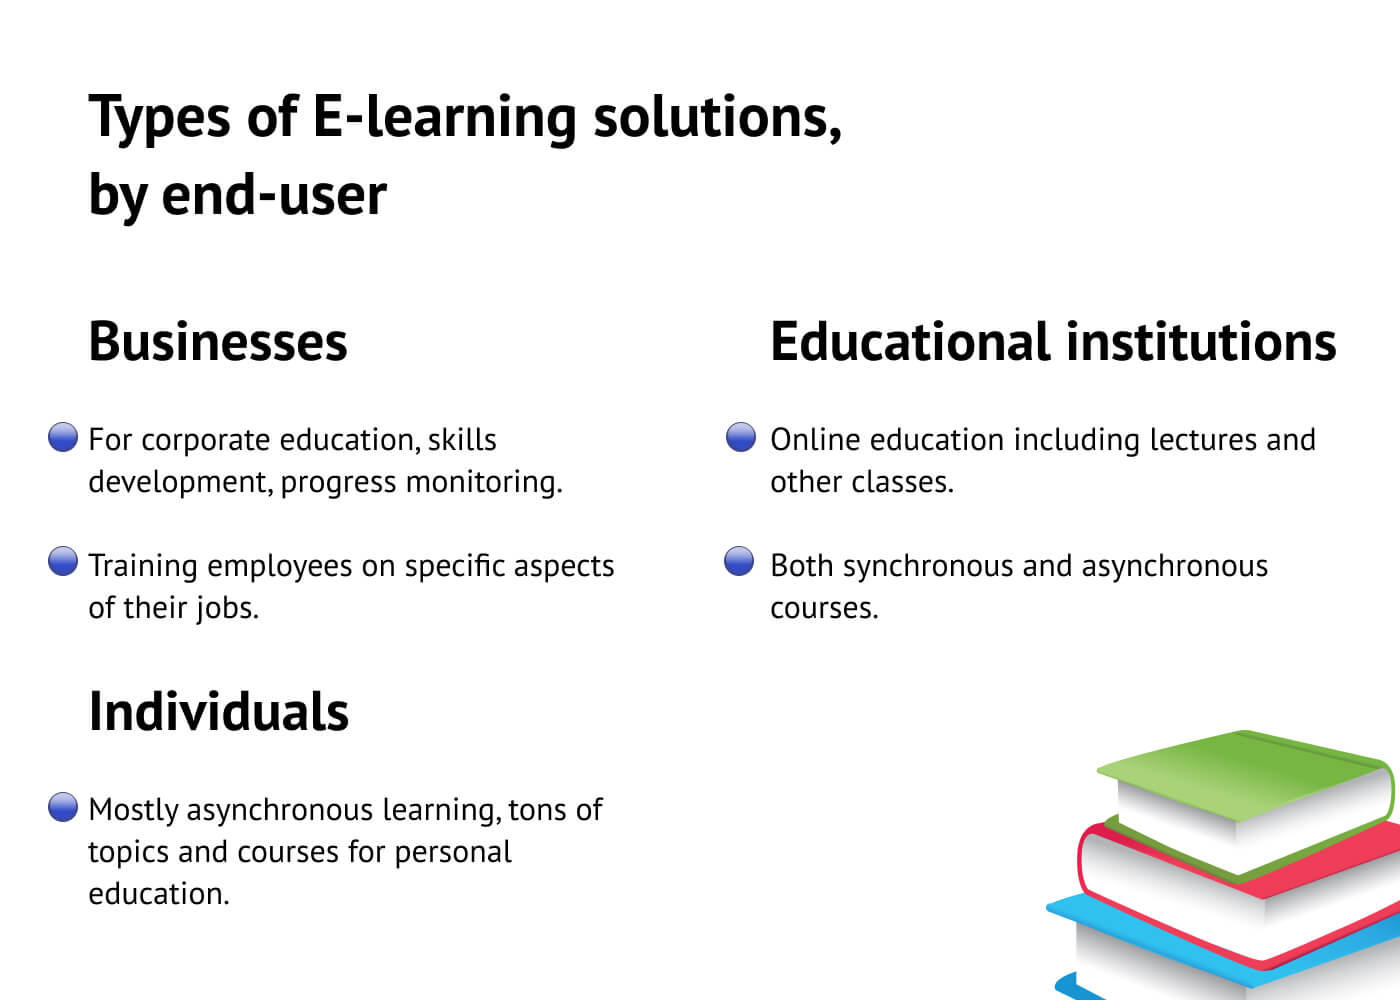 End-users of e-learning: businesses, educational institutions, individuals